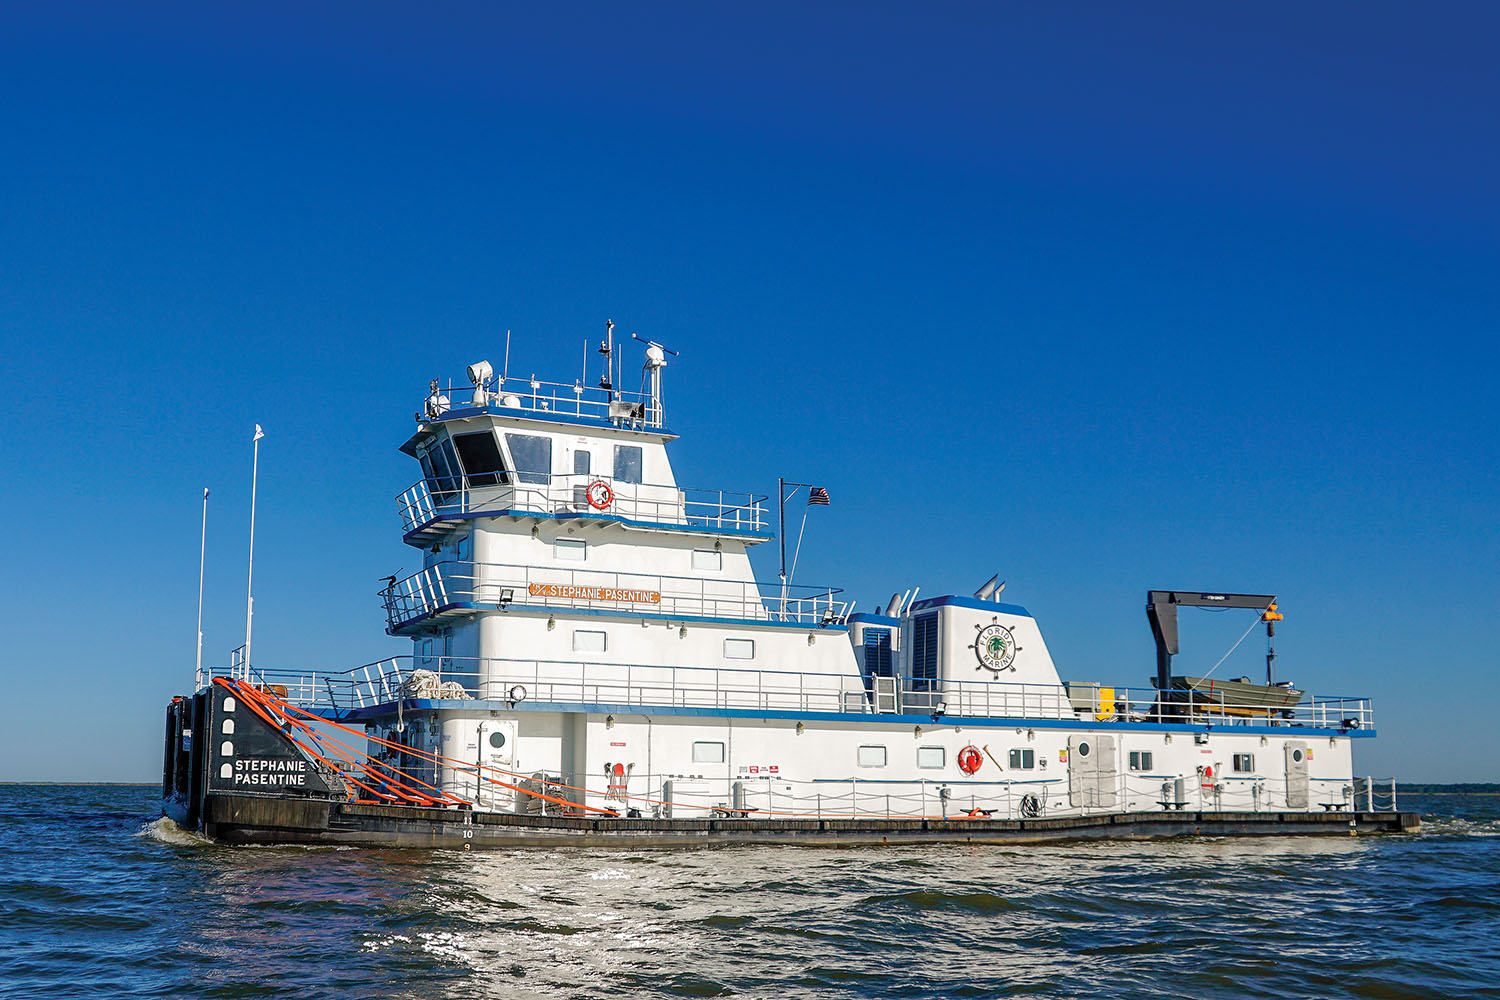 Metal Shark Alabama Delivers First Inland Towboat